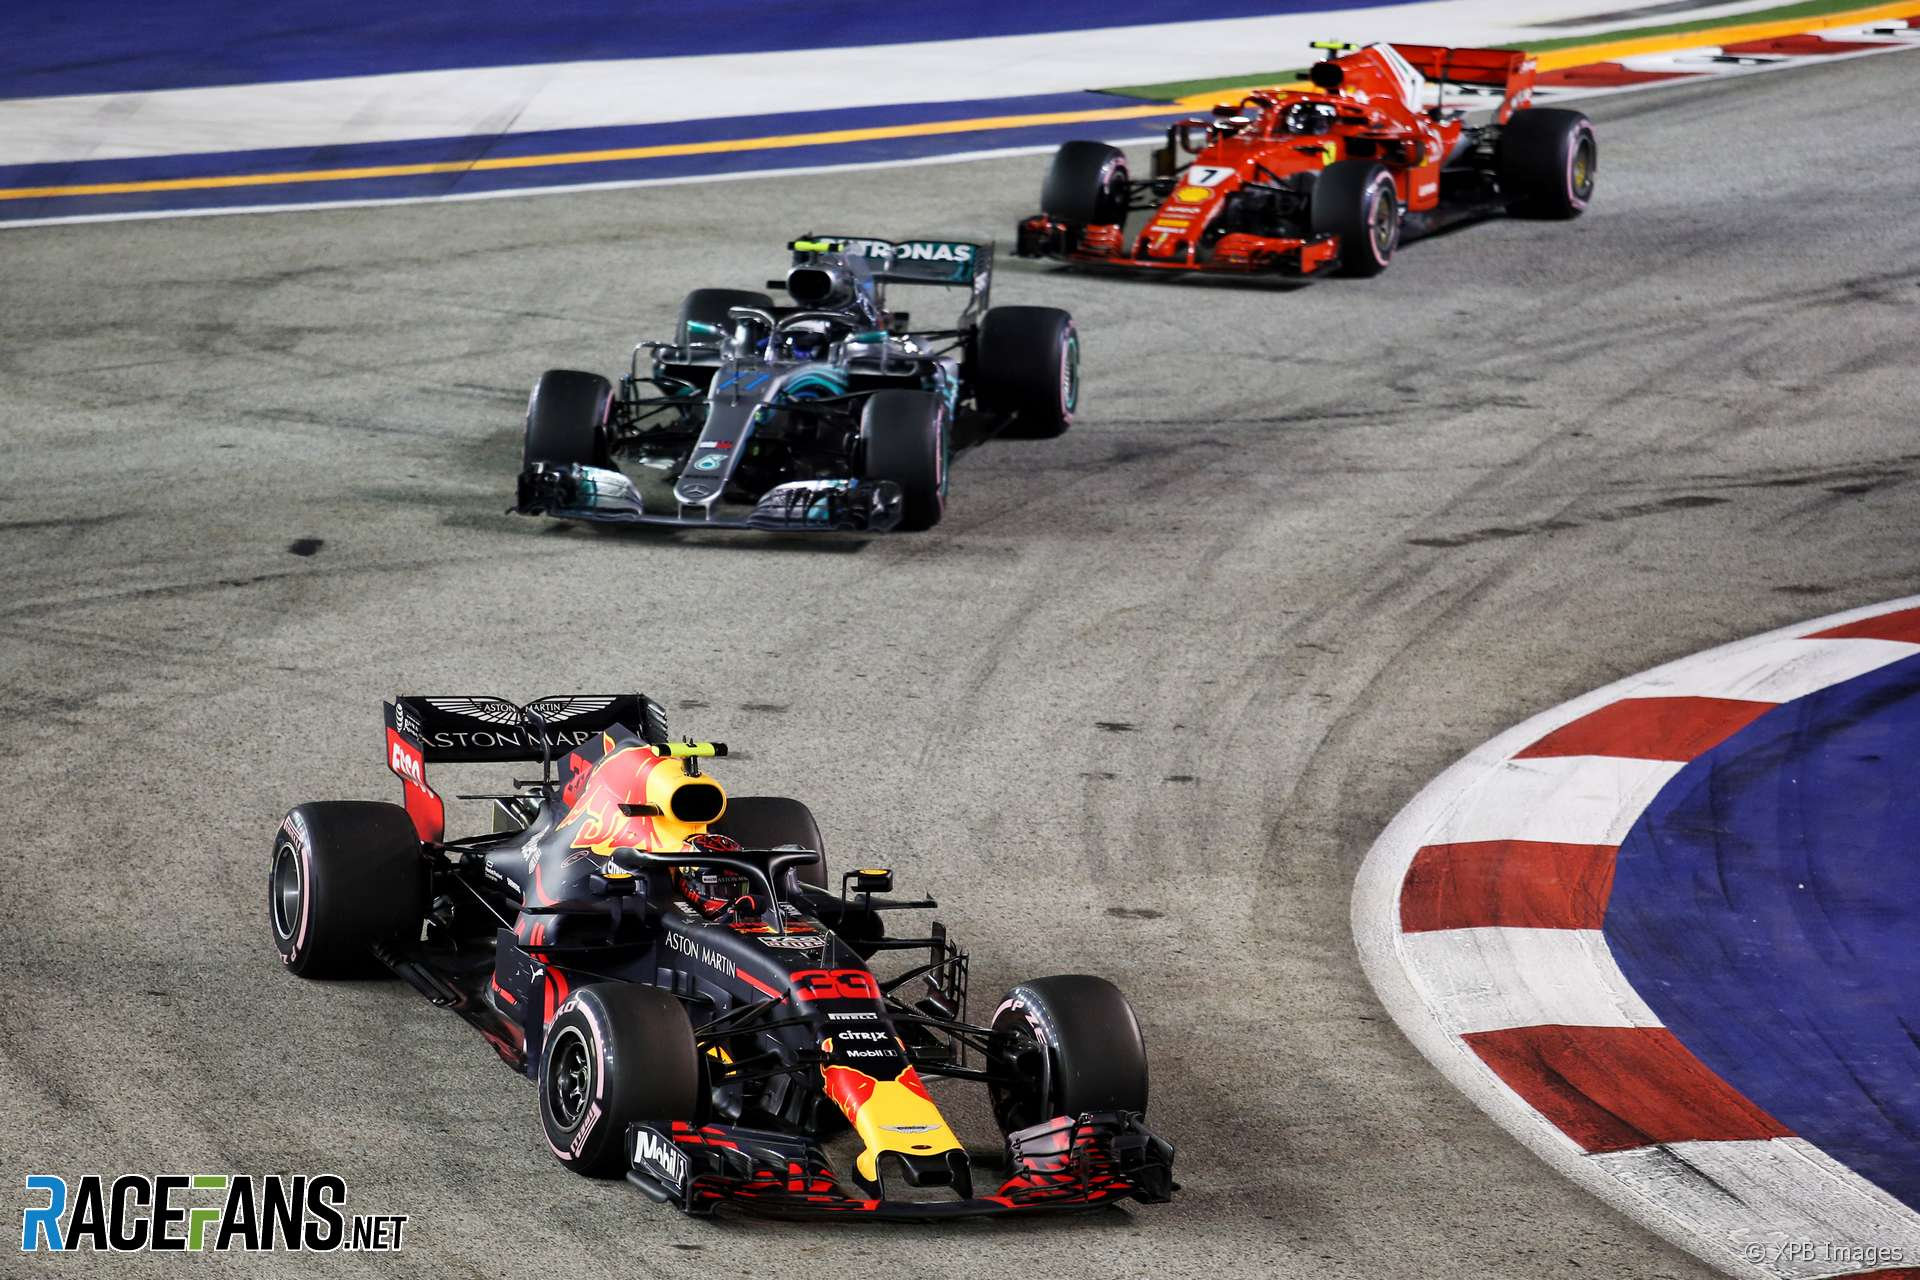 Charlie Whiting Wallpaper: Latest News, Videos And